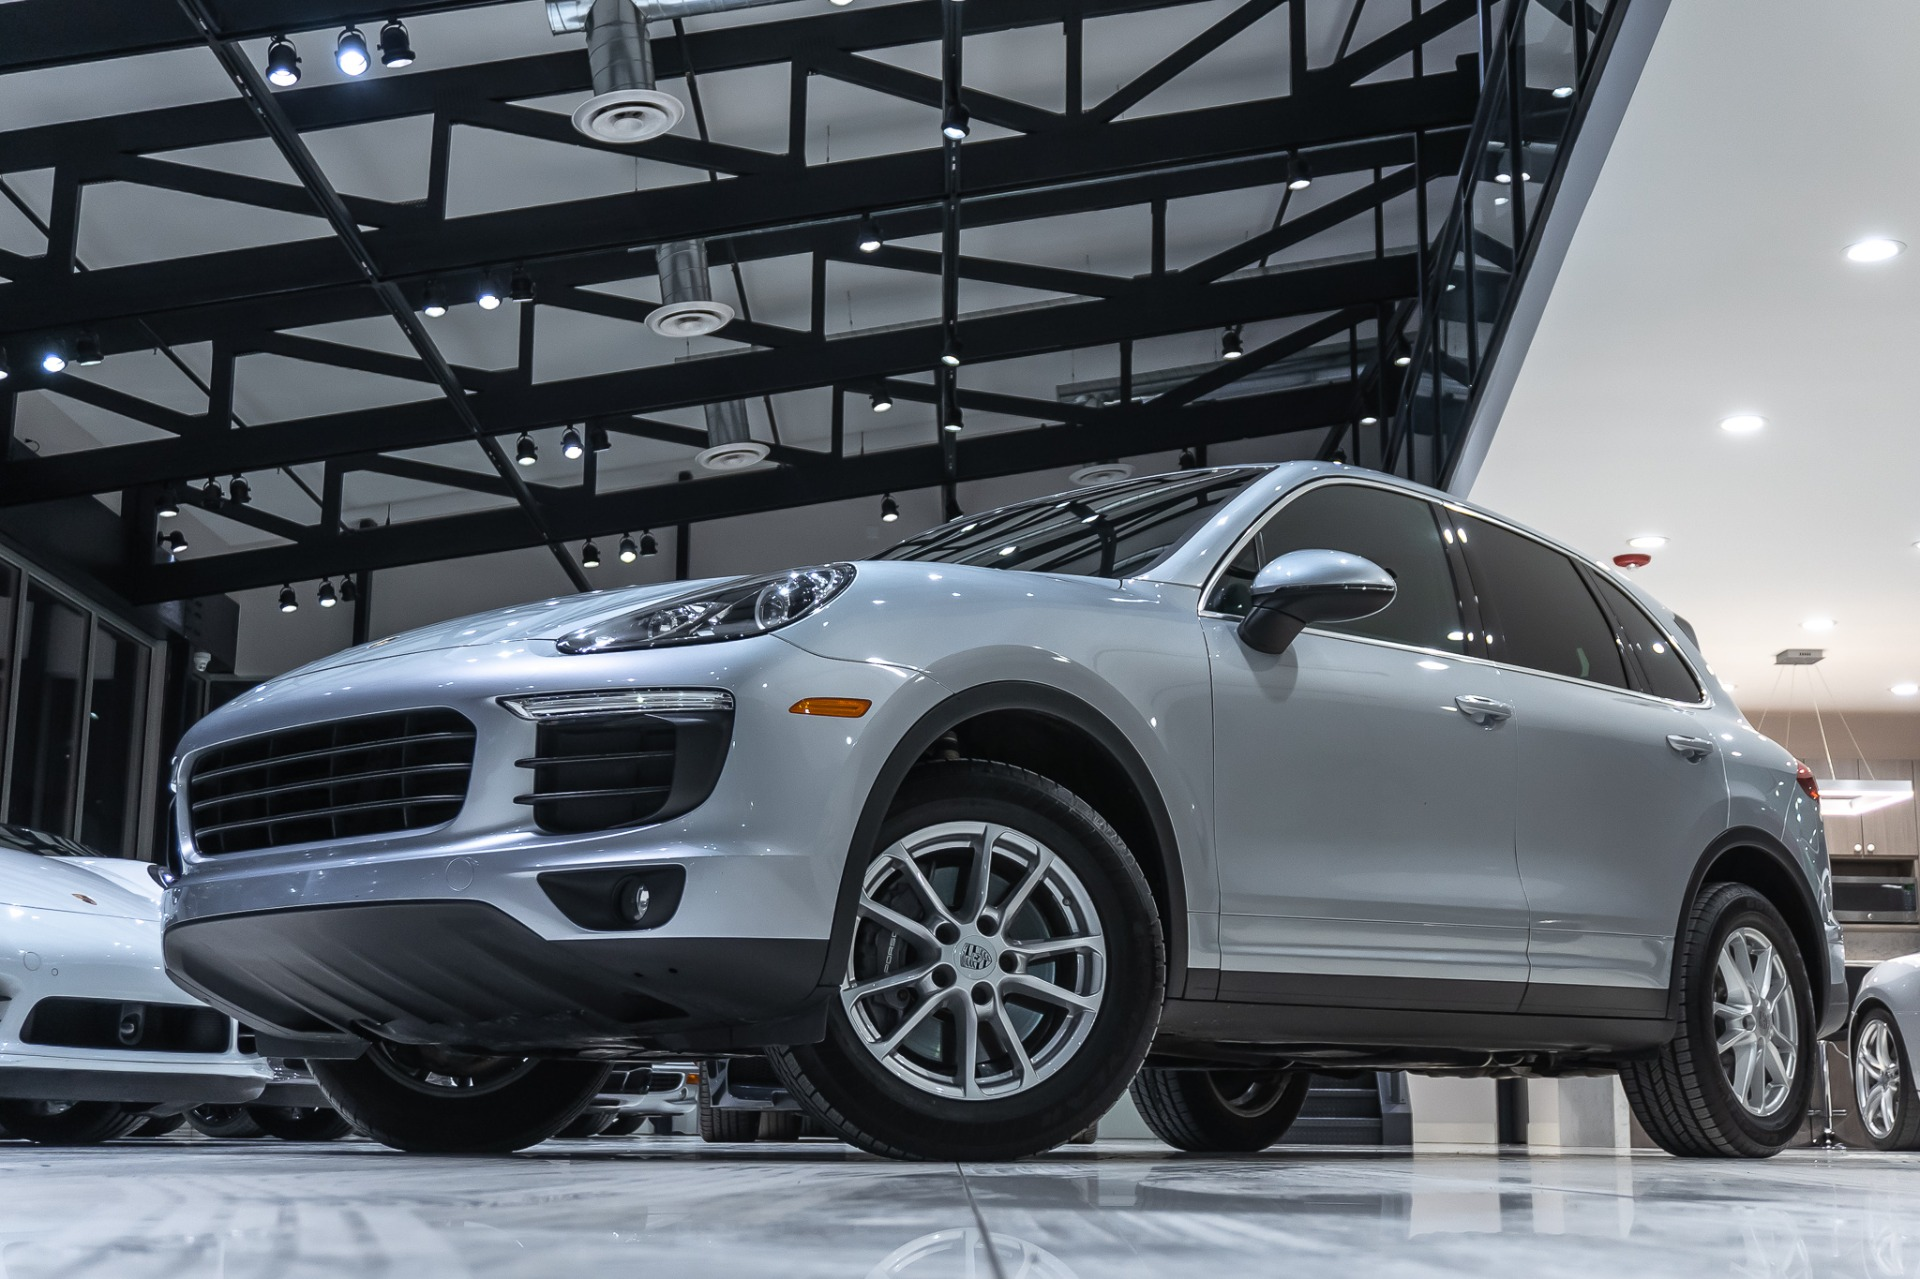 Used 2016 Porsche Cayenne Suv Porsche Active Suspension Management Heated Seats For Sale Special Pricing Chicago Motor Cars Stock 16342